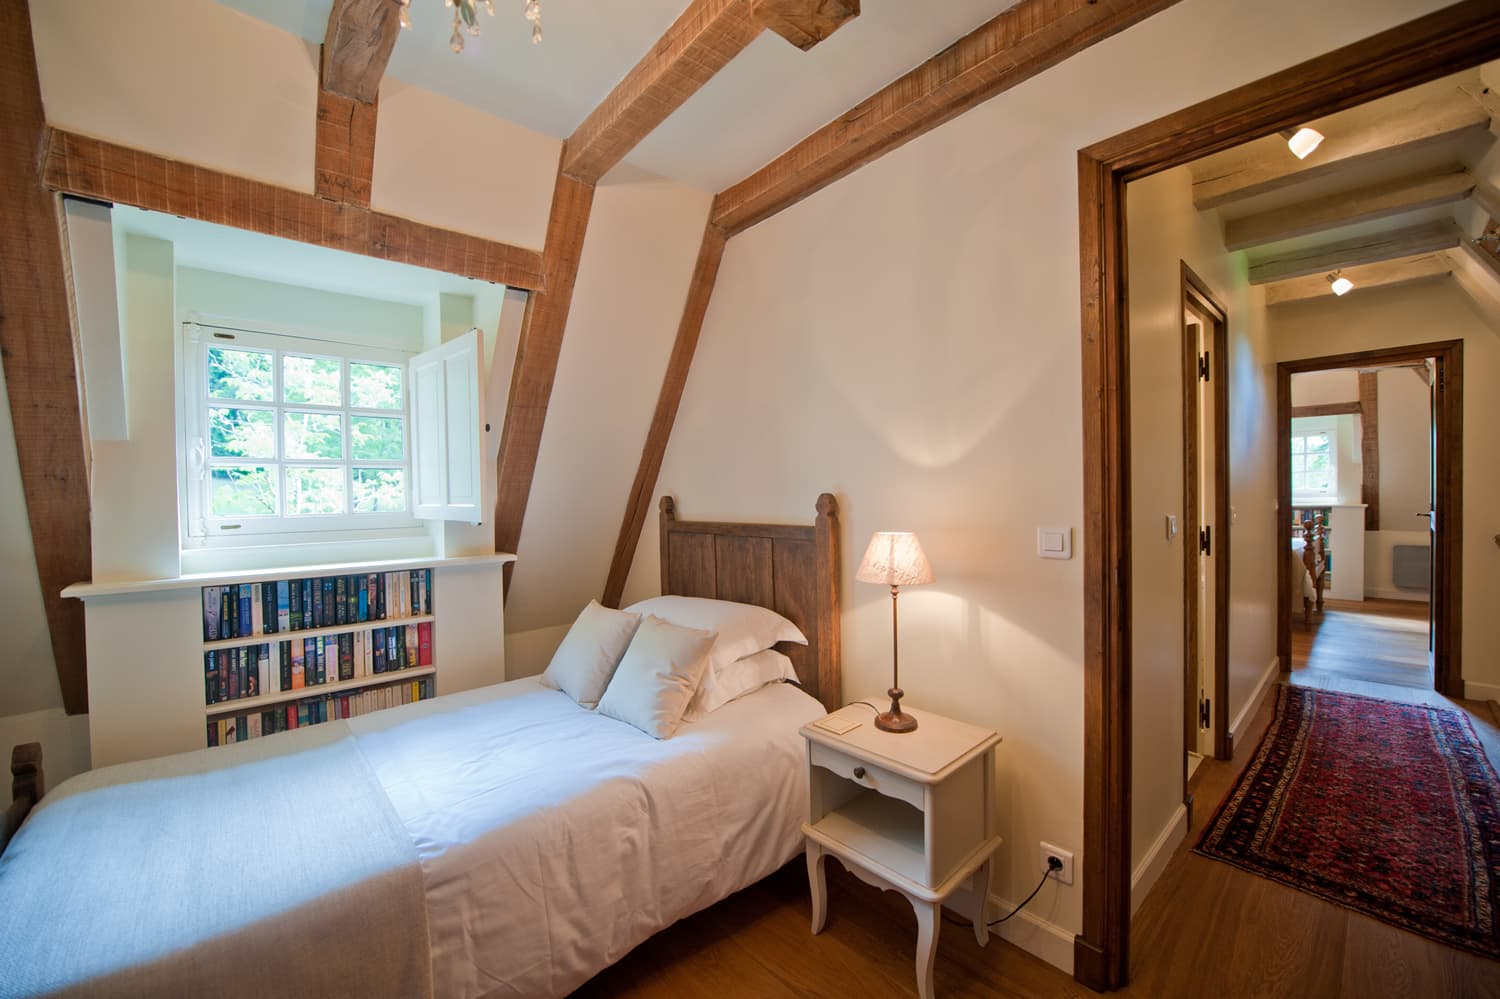 Bedroom in Dordogne rental cottage